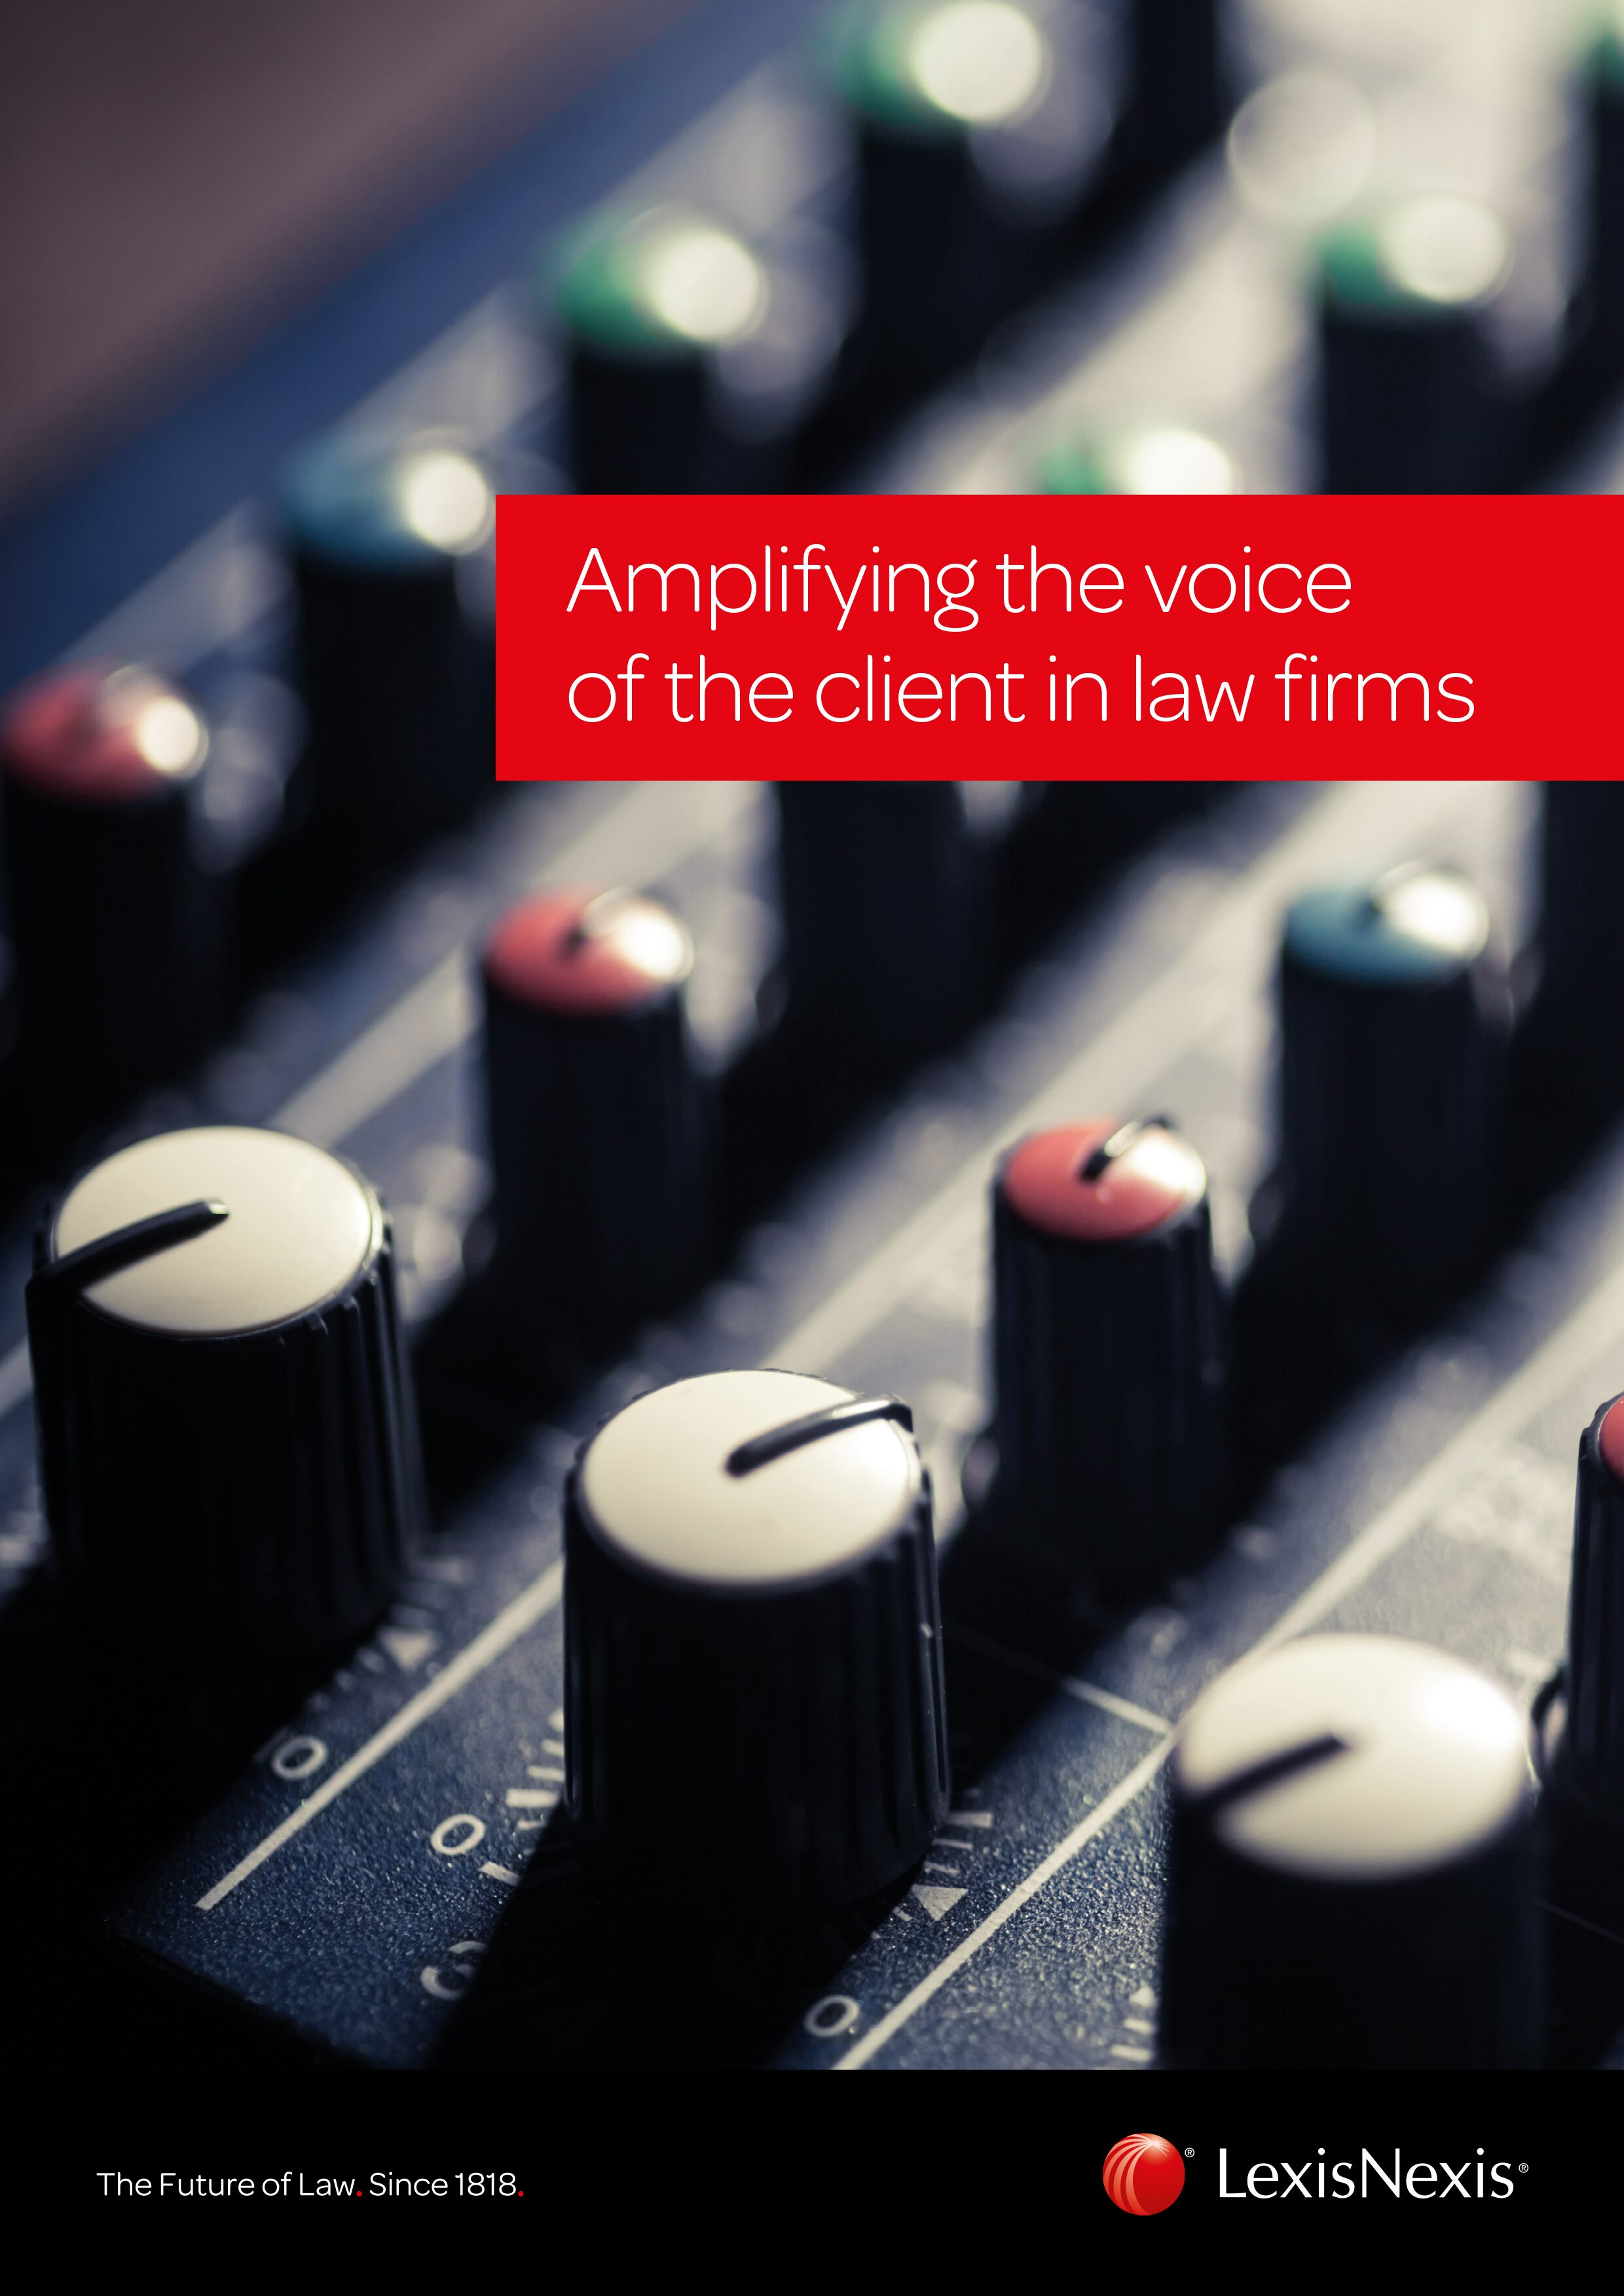 Amplifying the voice of the client in law firms